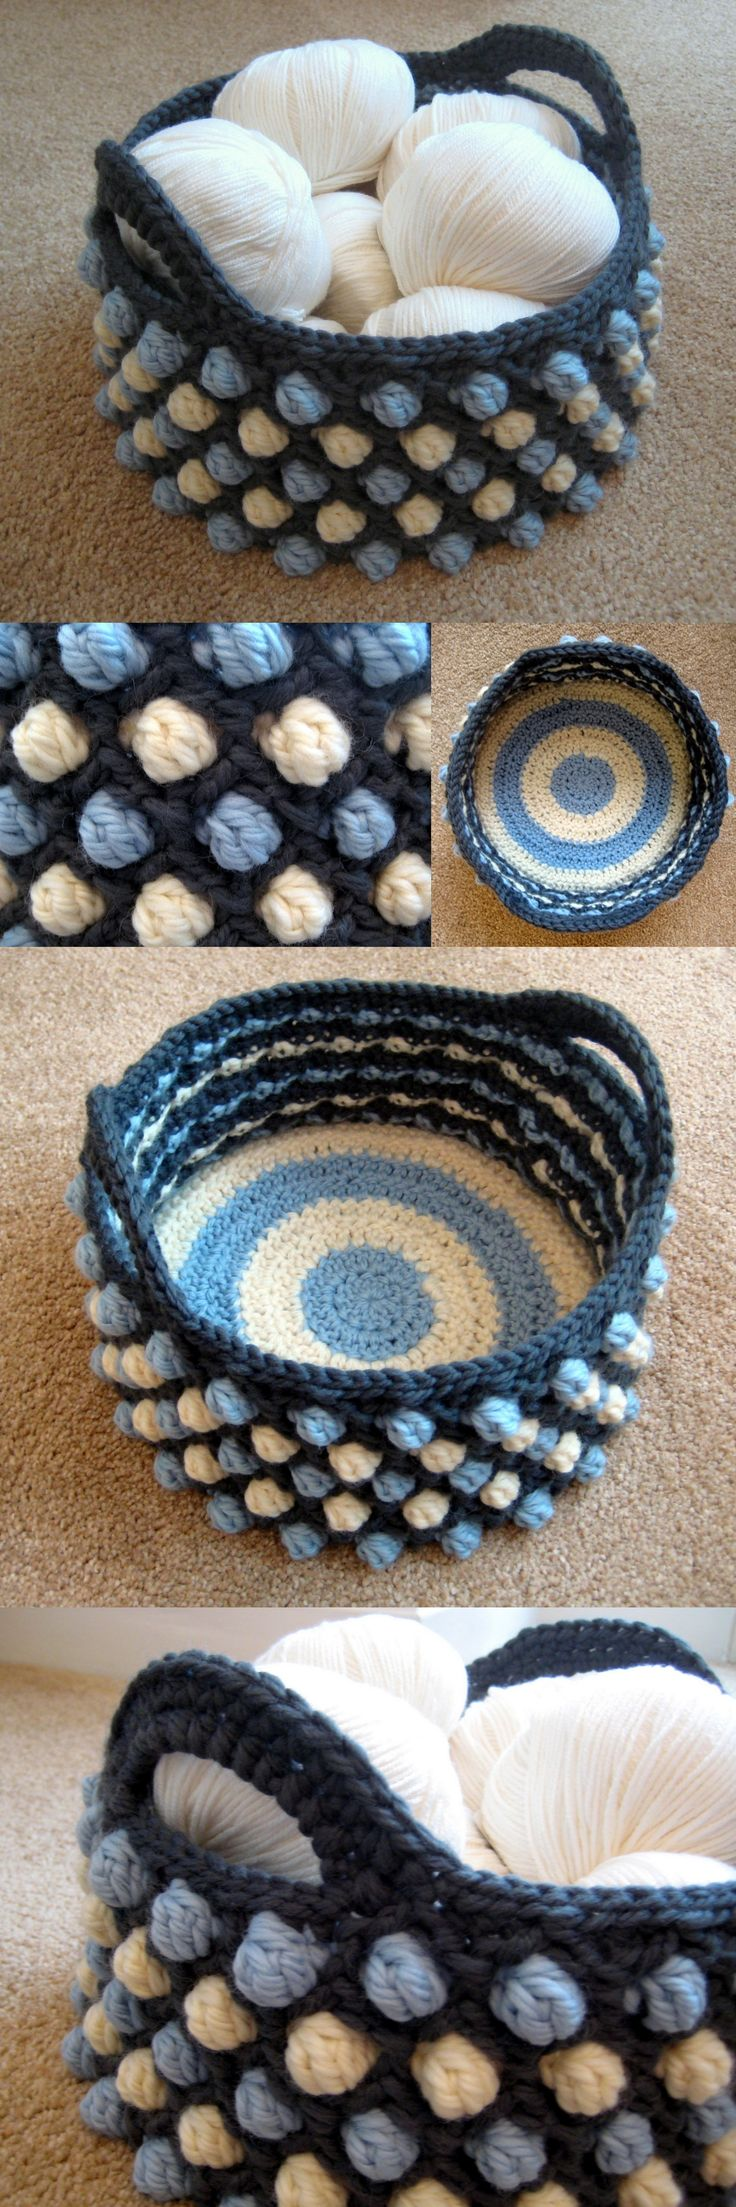 Best 25 crochet basket pattern ideas on pinterest crocheting crochet home decor and crochet Crochet home decor pinterest